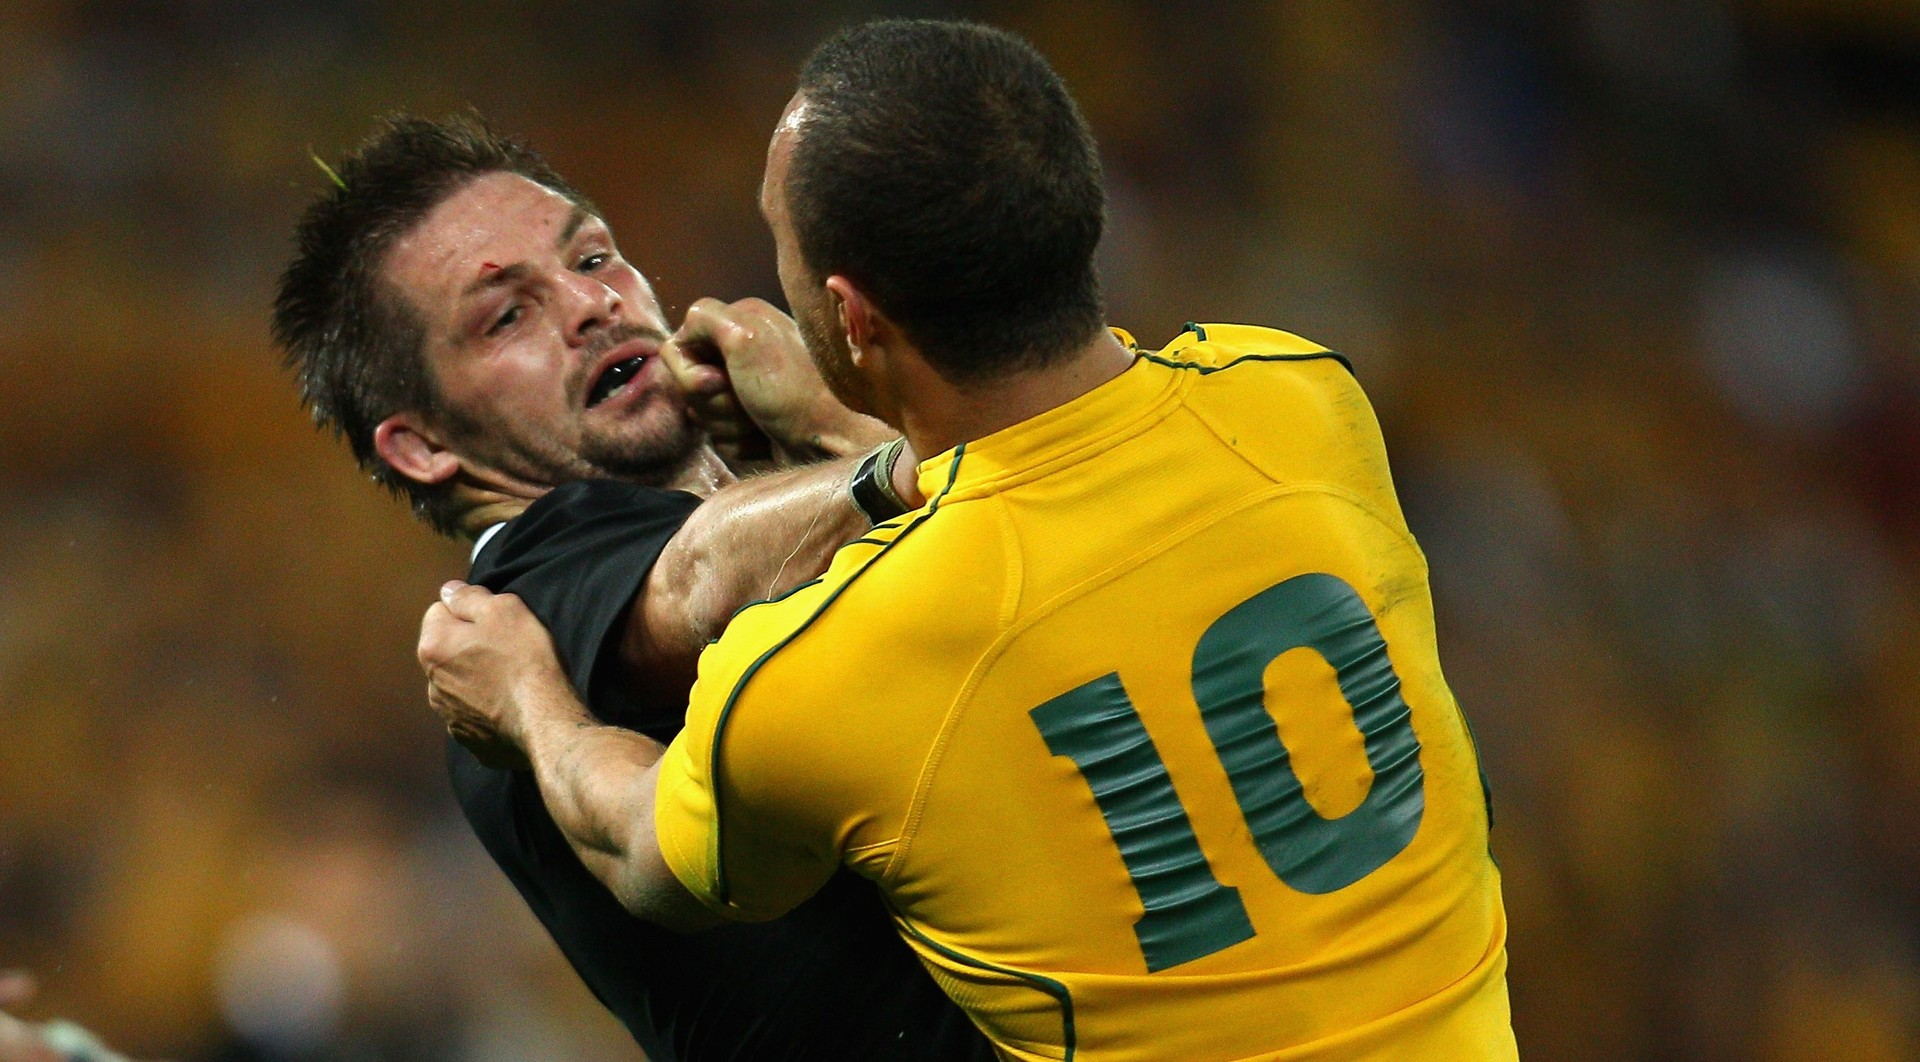 'One of the dirtiest players': Quade Cooper reveals McCaw confrontation